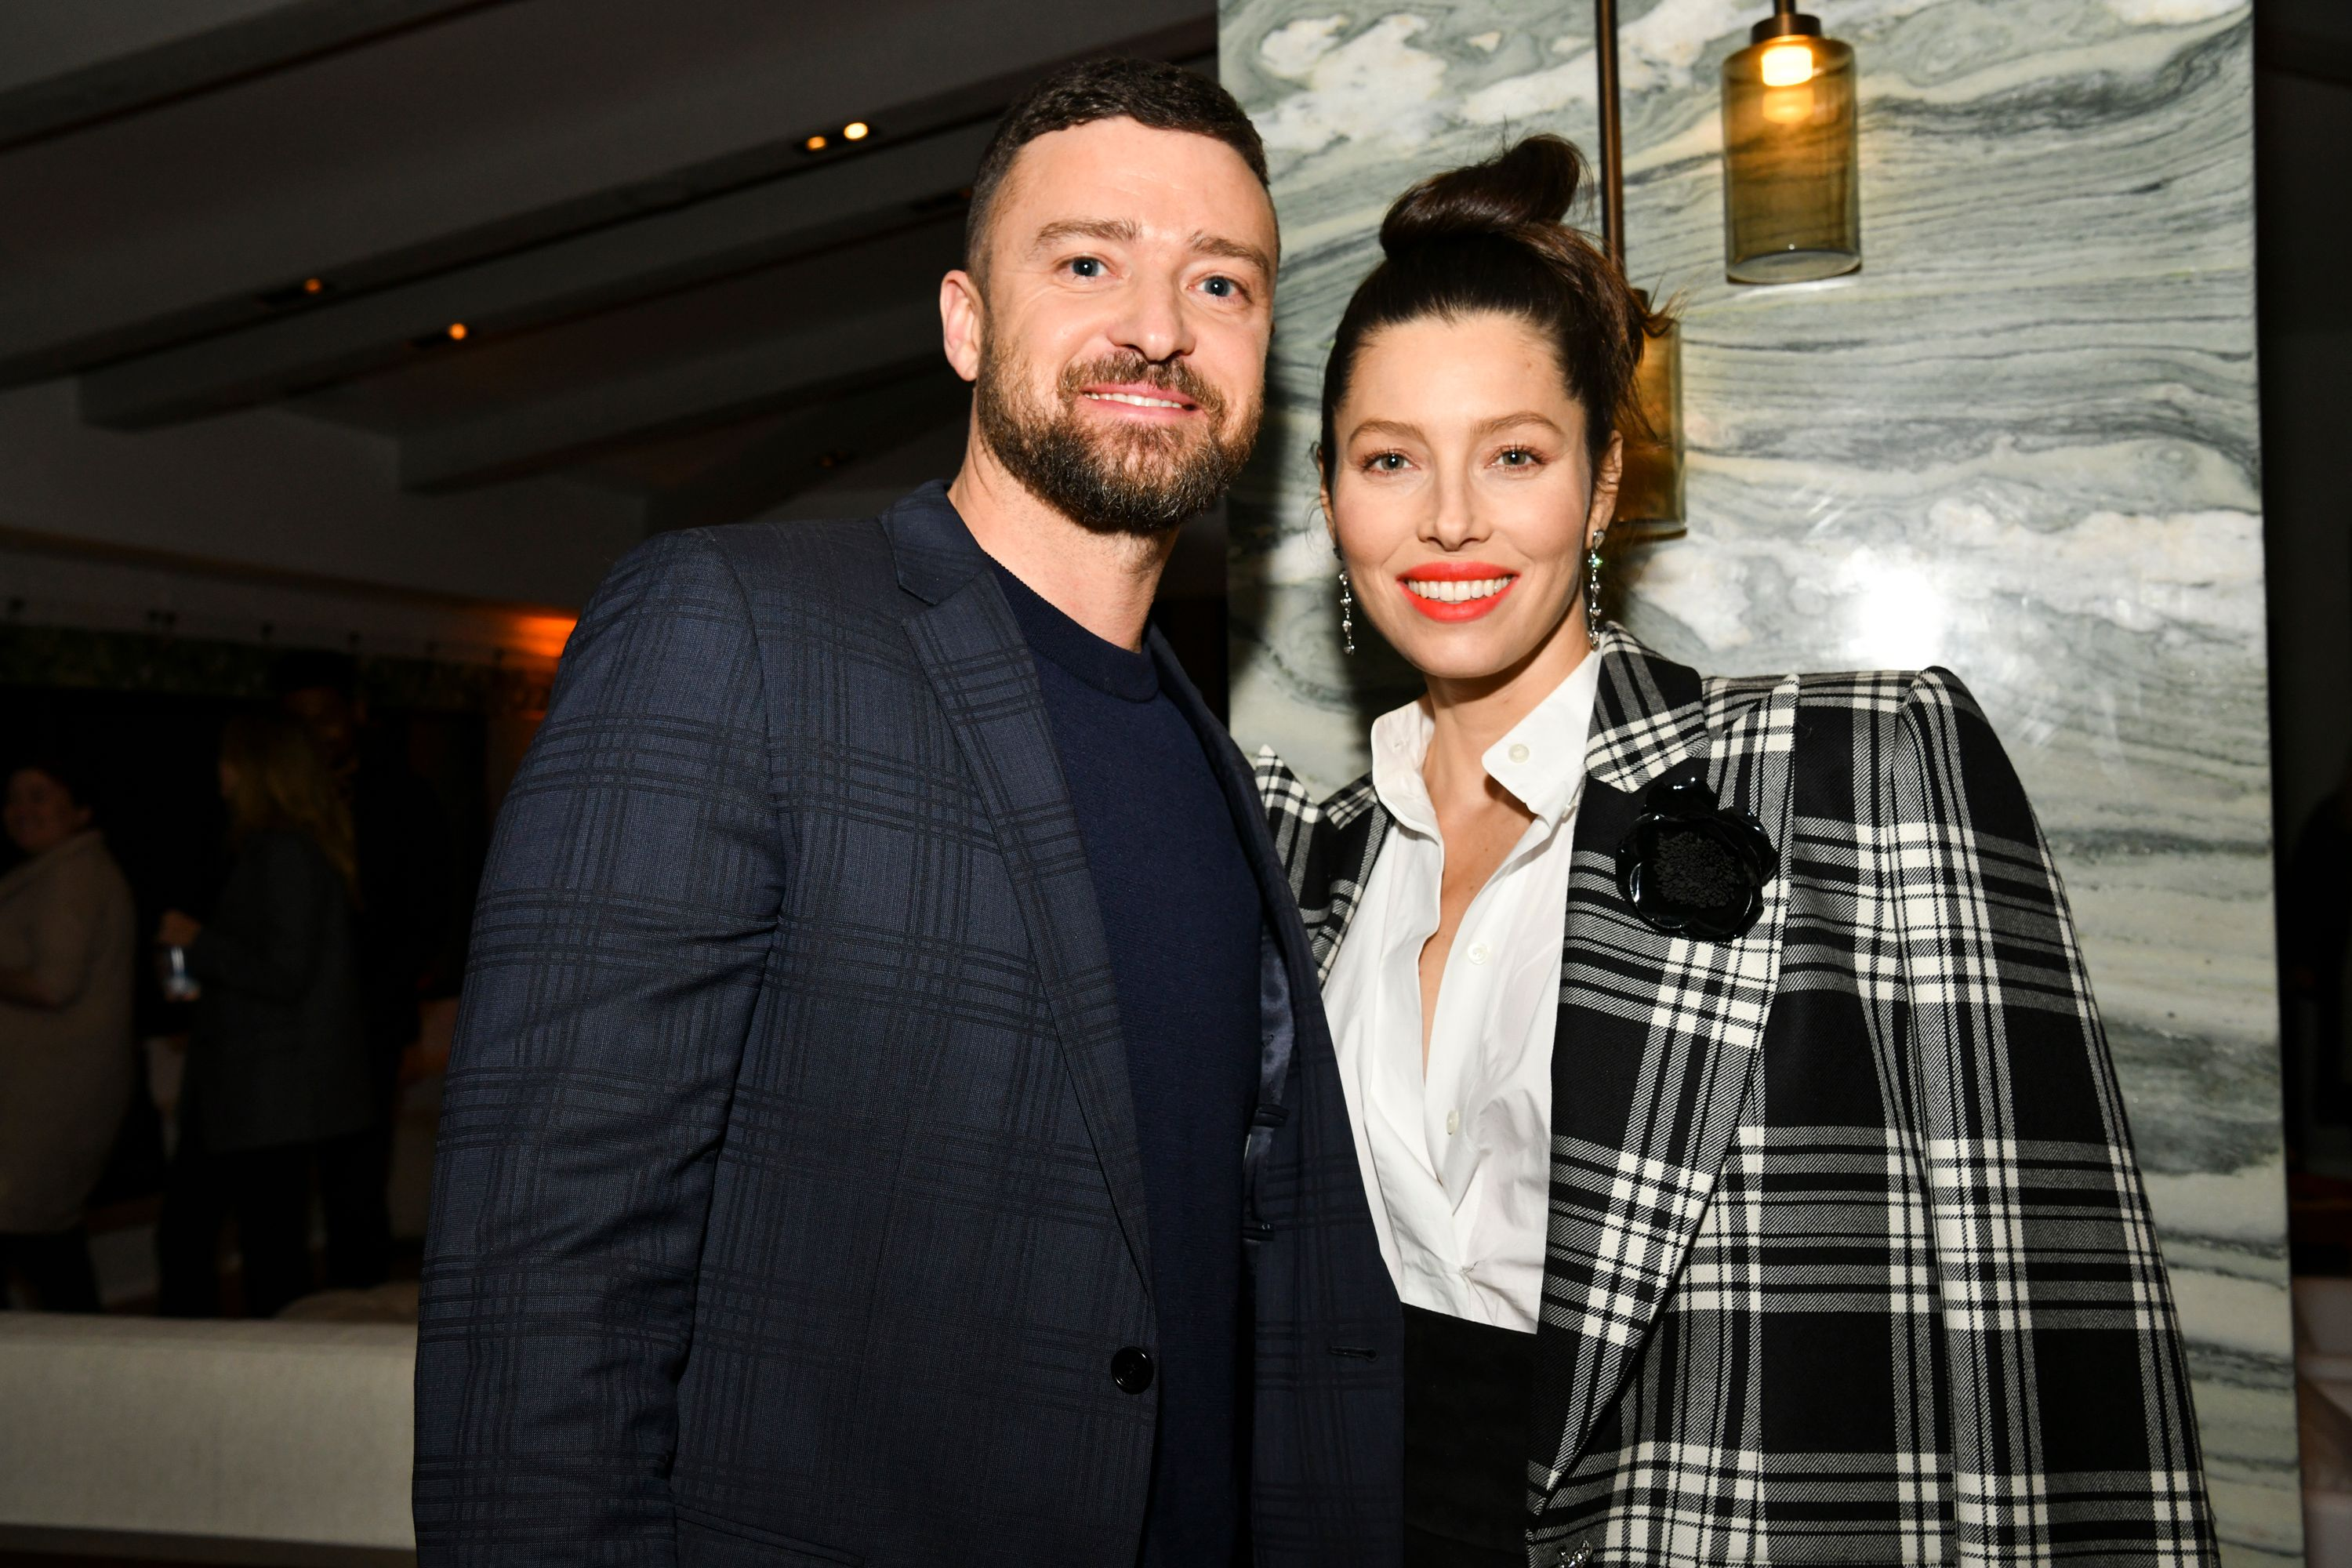 Justin Timberlake and Jessica Biel at an event together